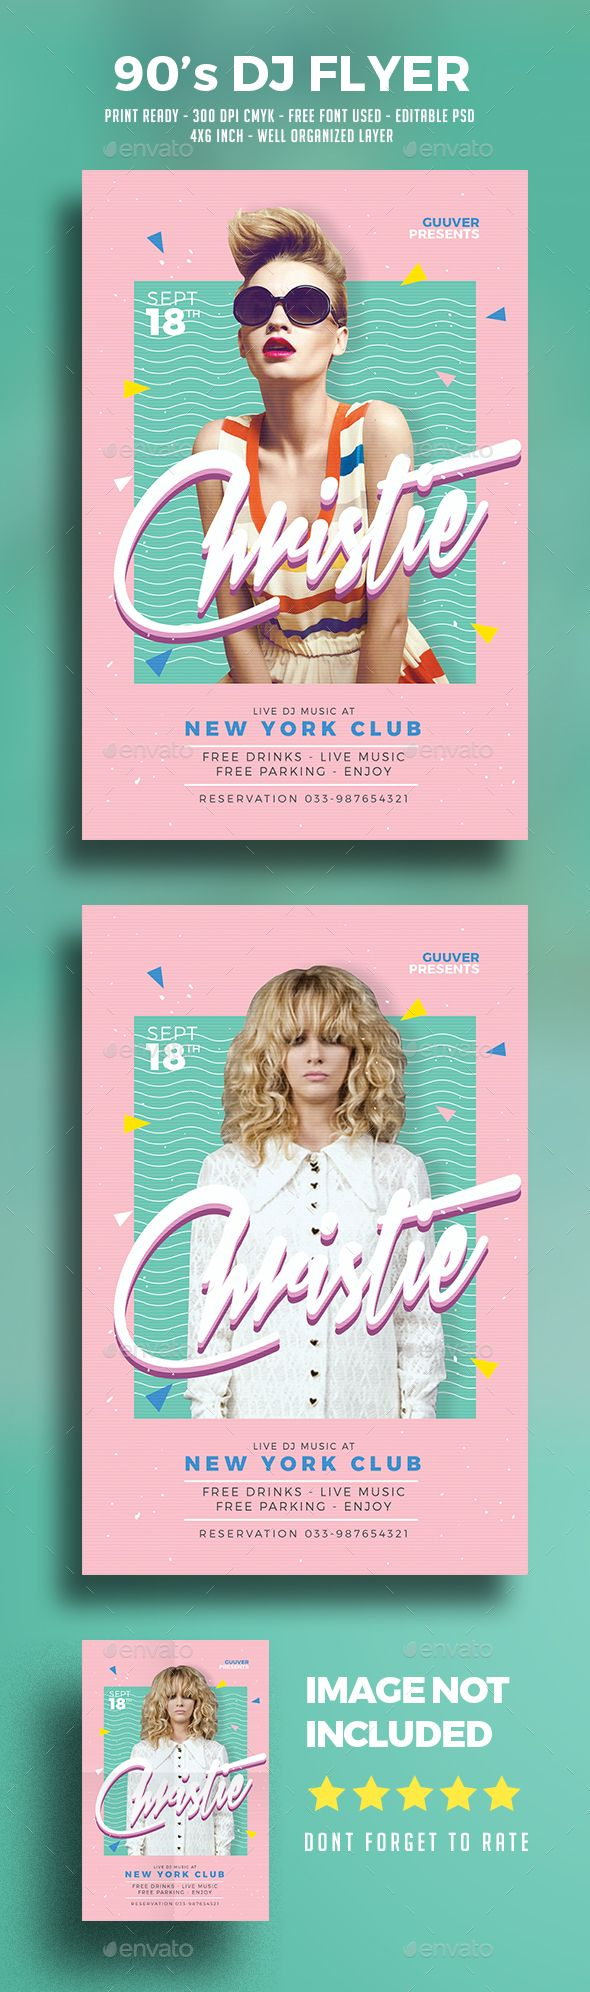 90's DJ Flyer Template PSD